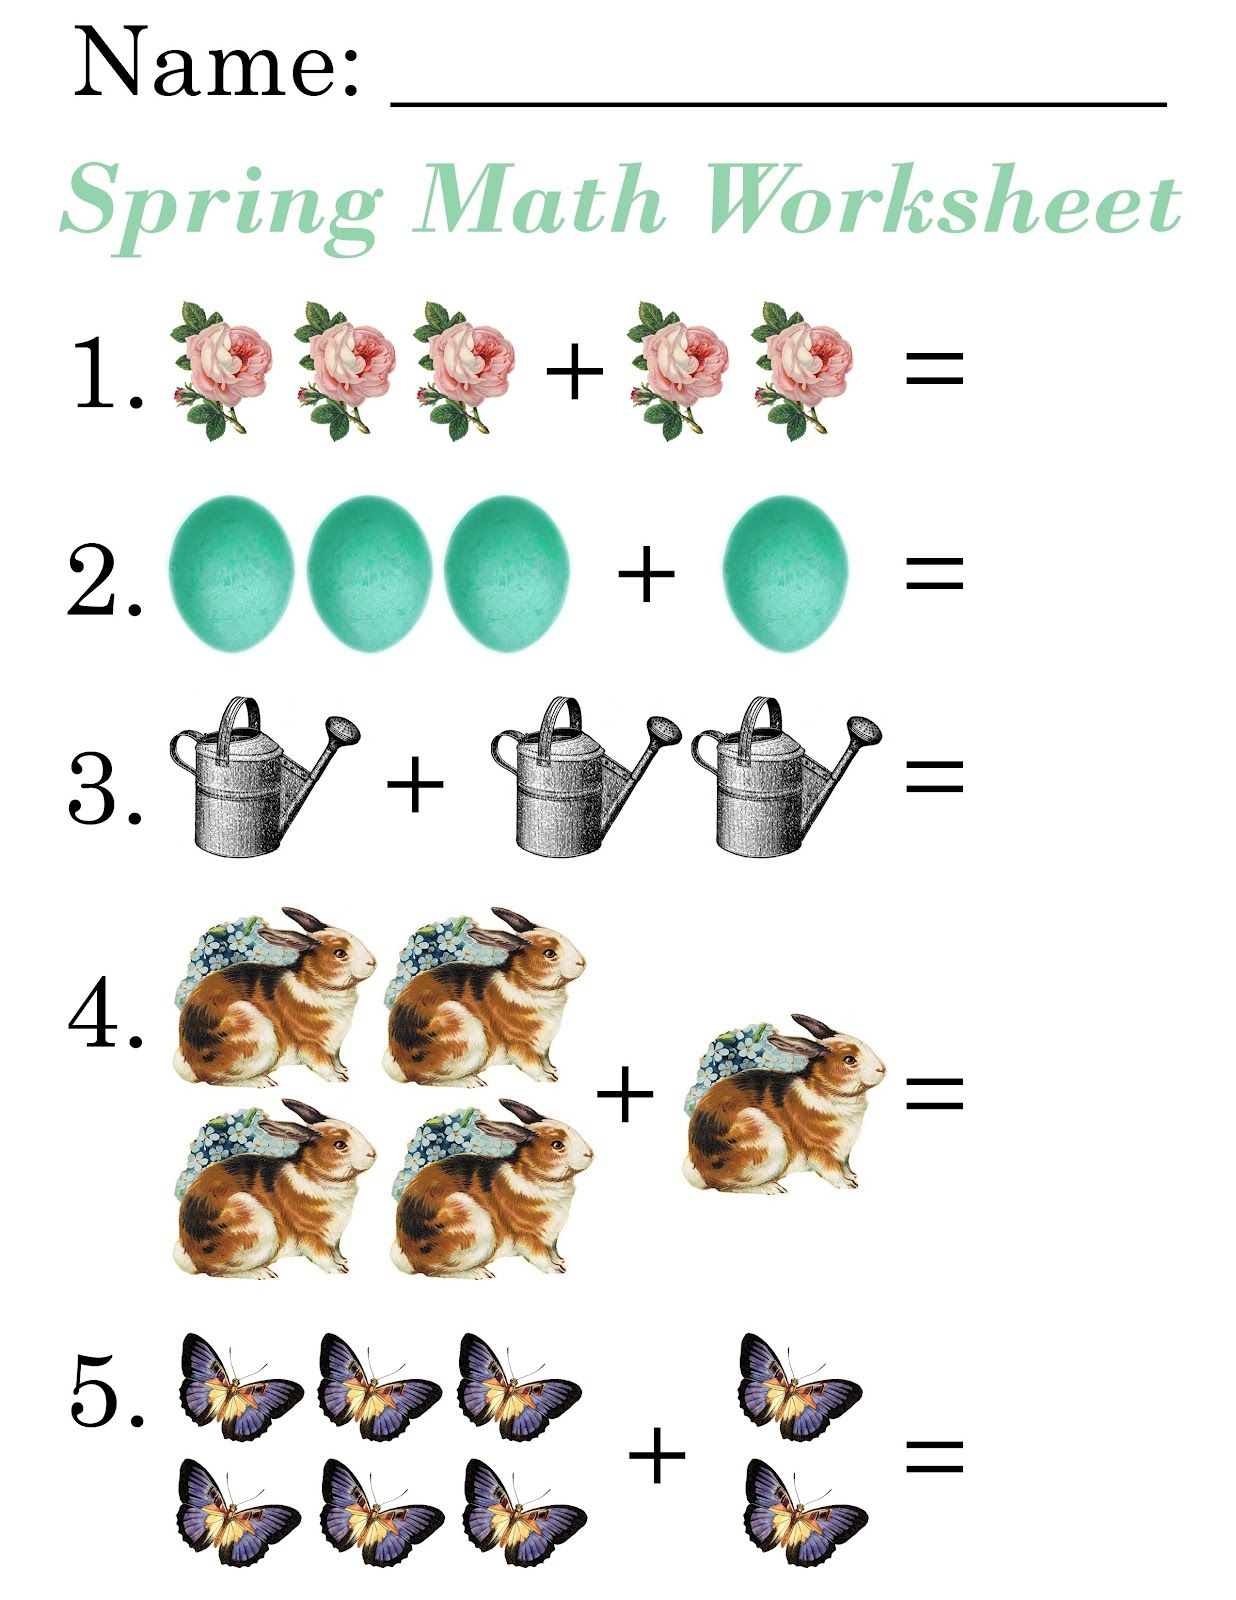 Lilac Lavender Kids Spring Math Worksheets – Worksheet for Math